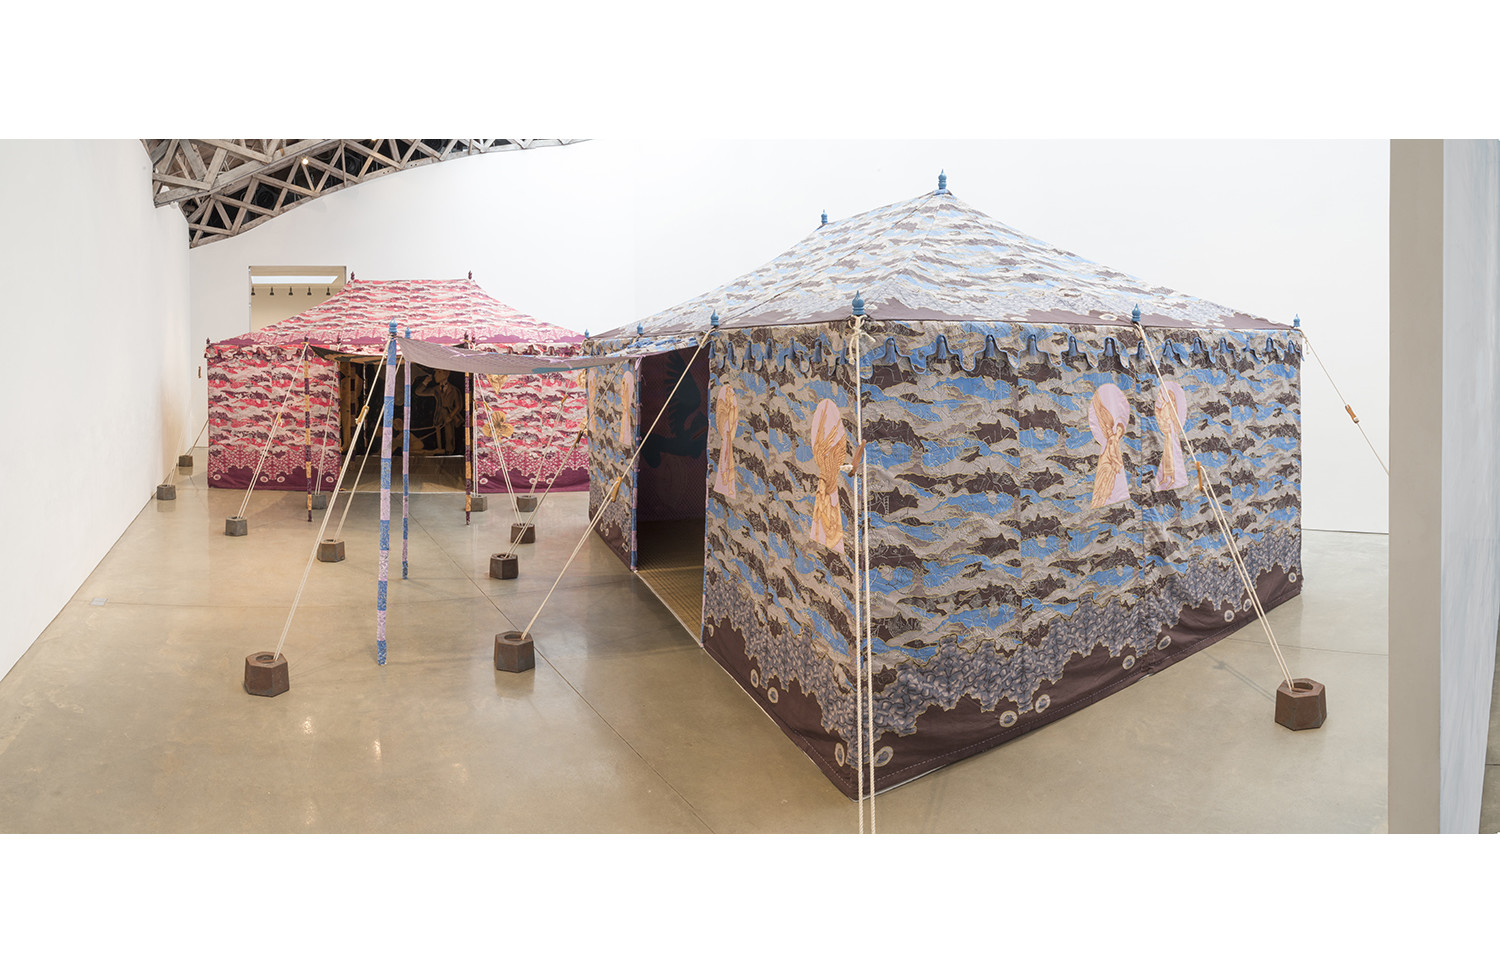 Francesco Clemente Devil's Tent - View 2